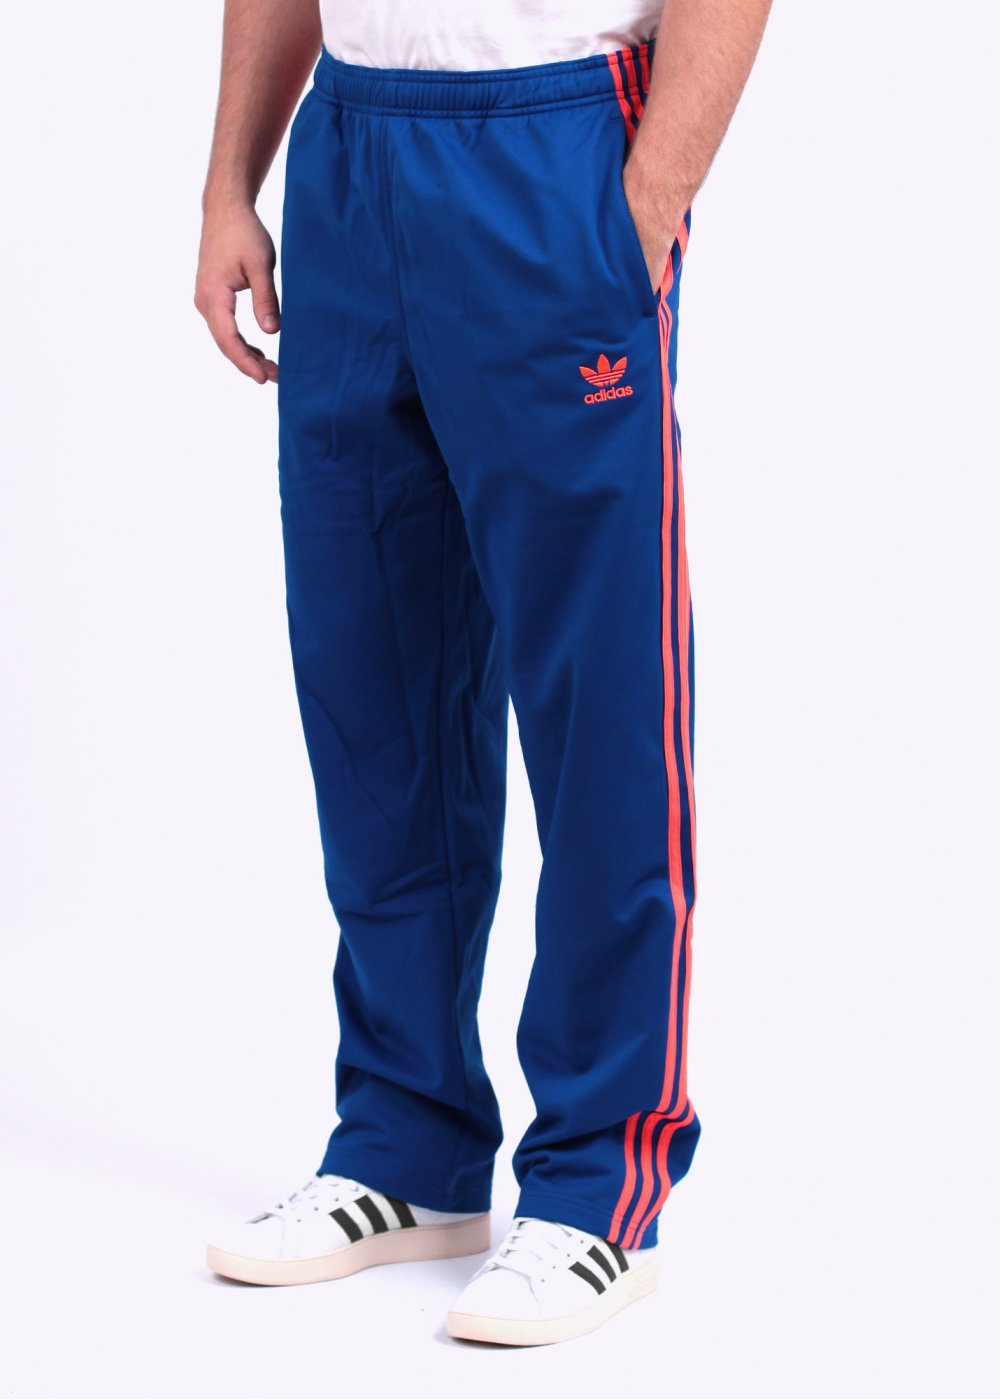 Kids Fleece Winter School Uniform Royal Blue Tracksuit Pants for - Compare prices of products in Baby & Kid's Clothes from Online Stores in Australia. Save with r0nd.tk!